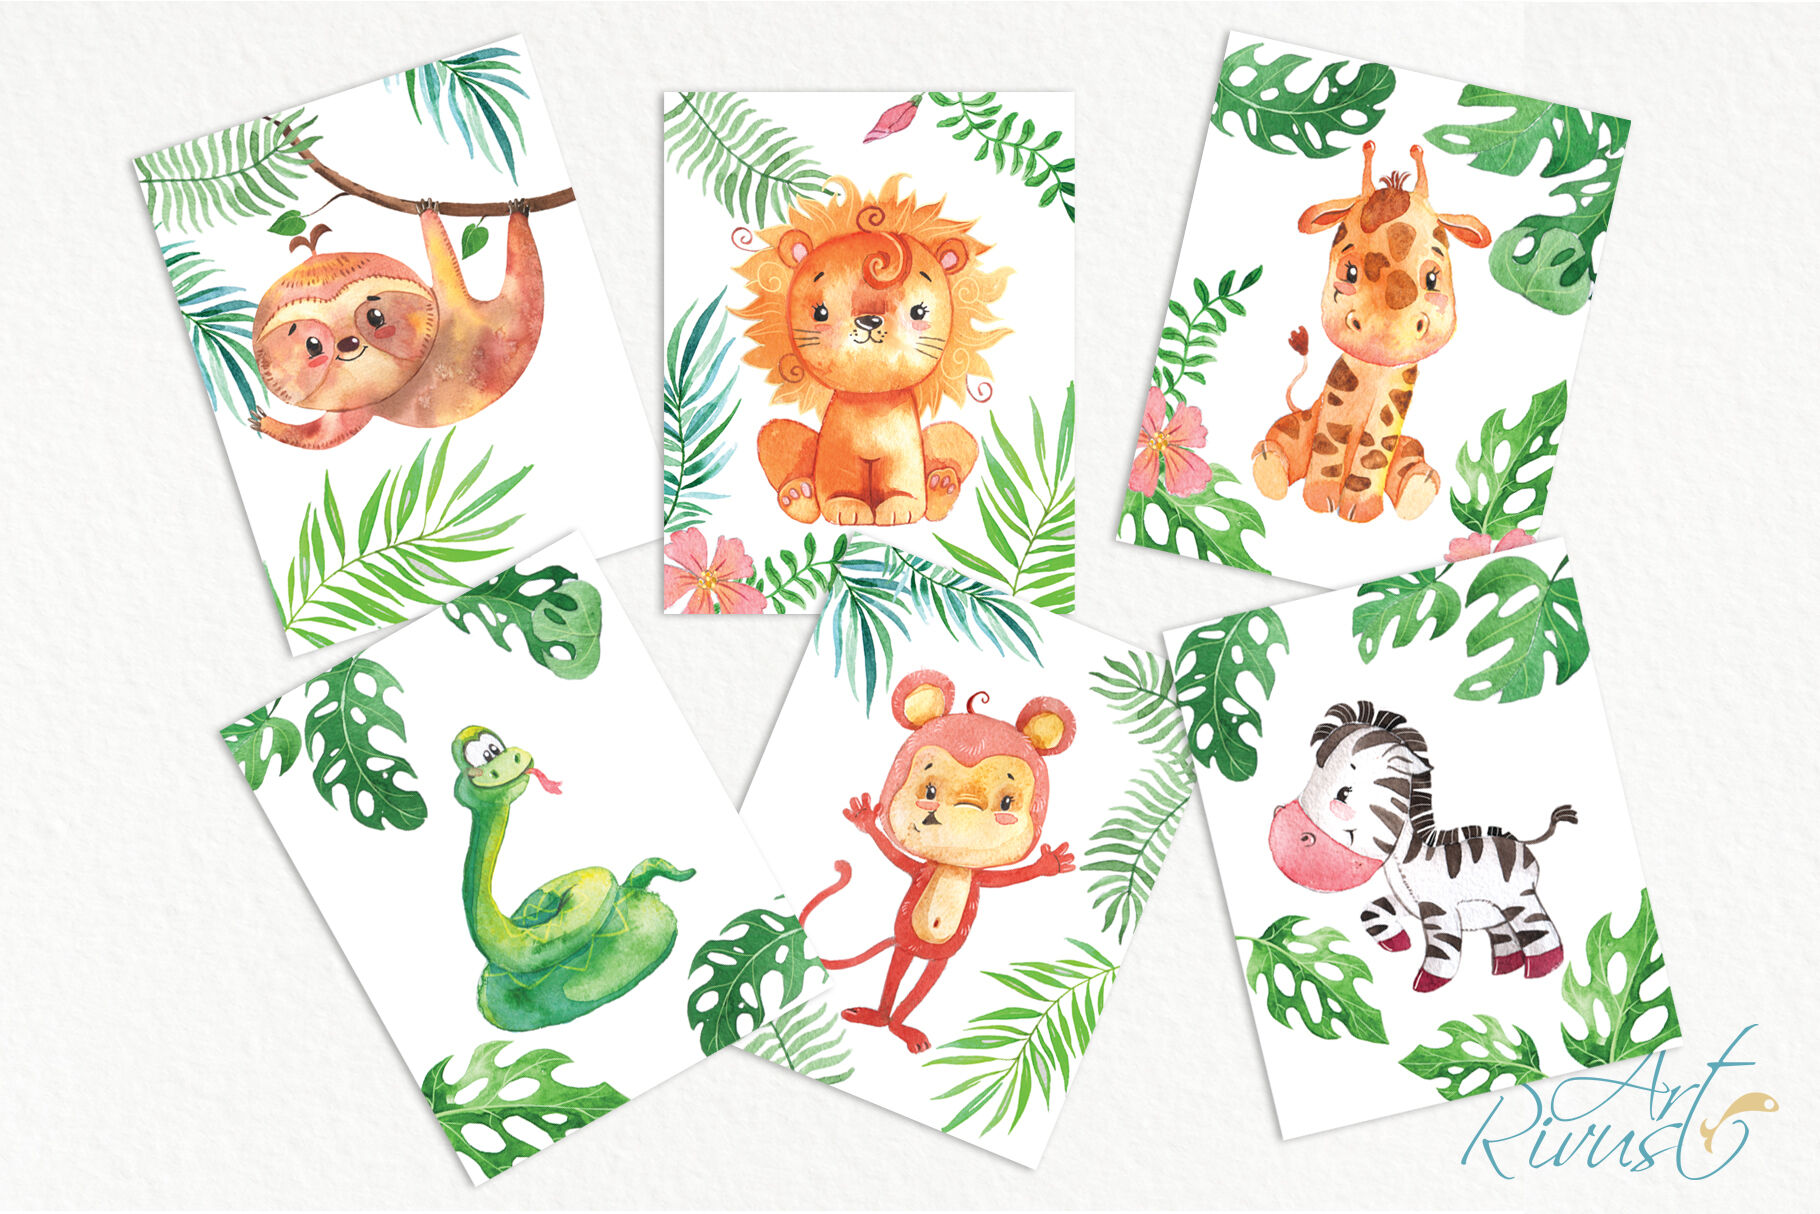 image regarding Printable Safari Animals titled Printable Nursery Artwork Safari Pets. Adorable African wild